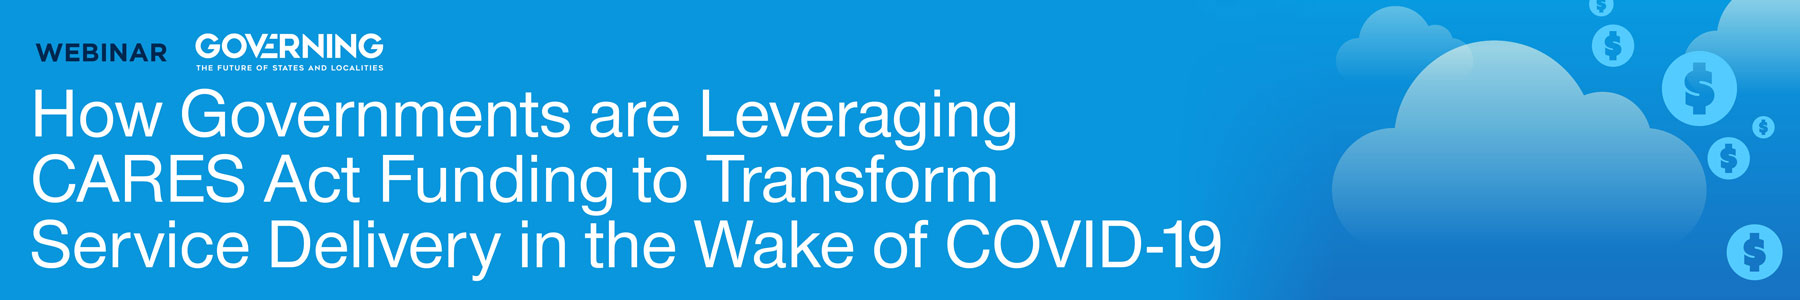 How Governments are Leveraging CARES Act Funding to Transform Service Delivery in the Wake of COVID-19